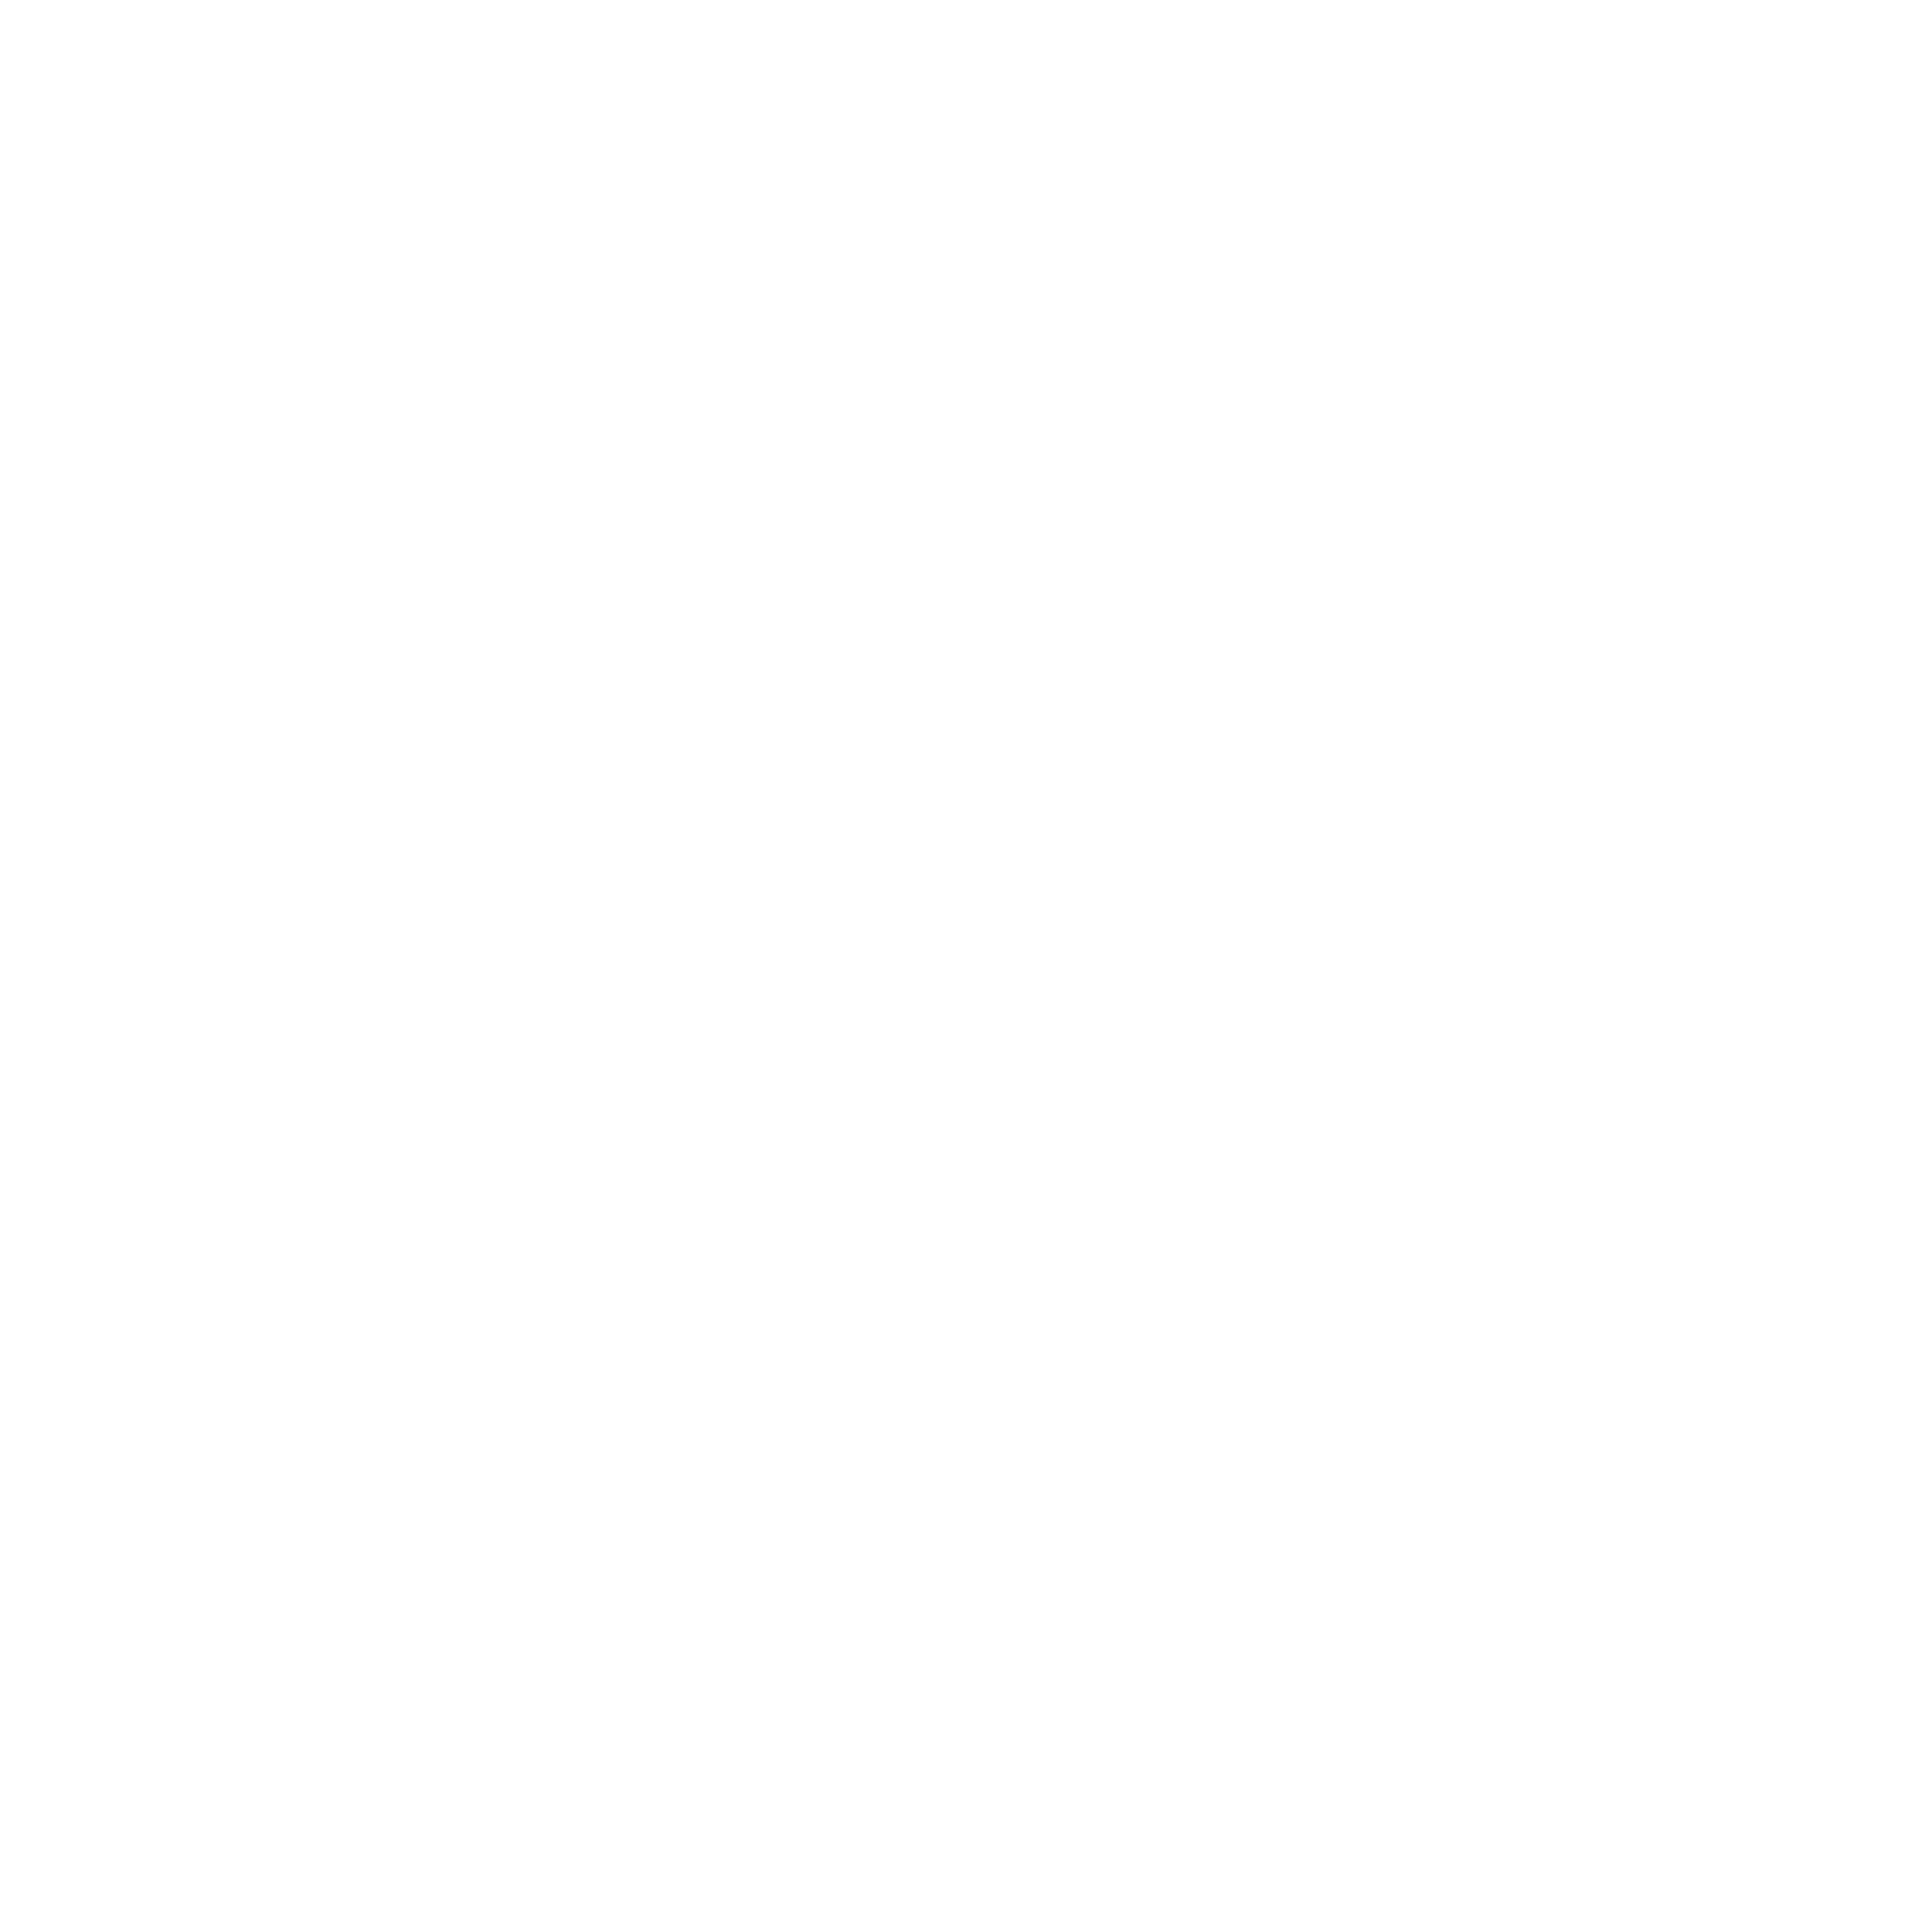 roaster Panther's logo